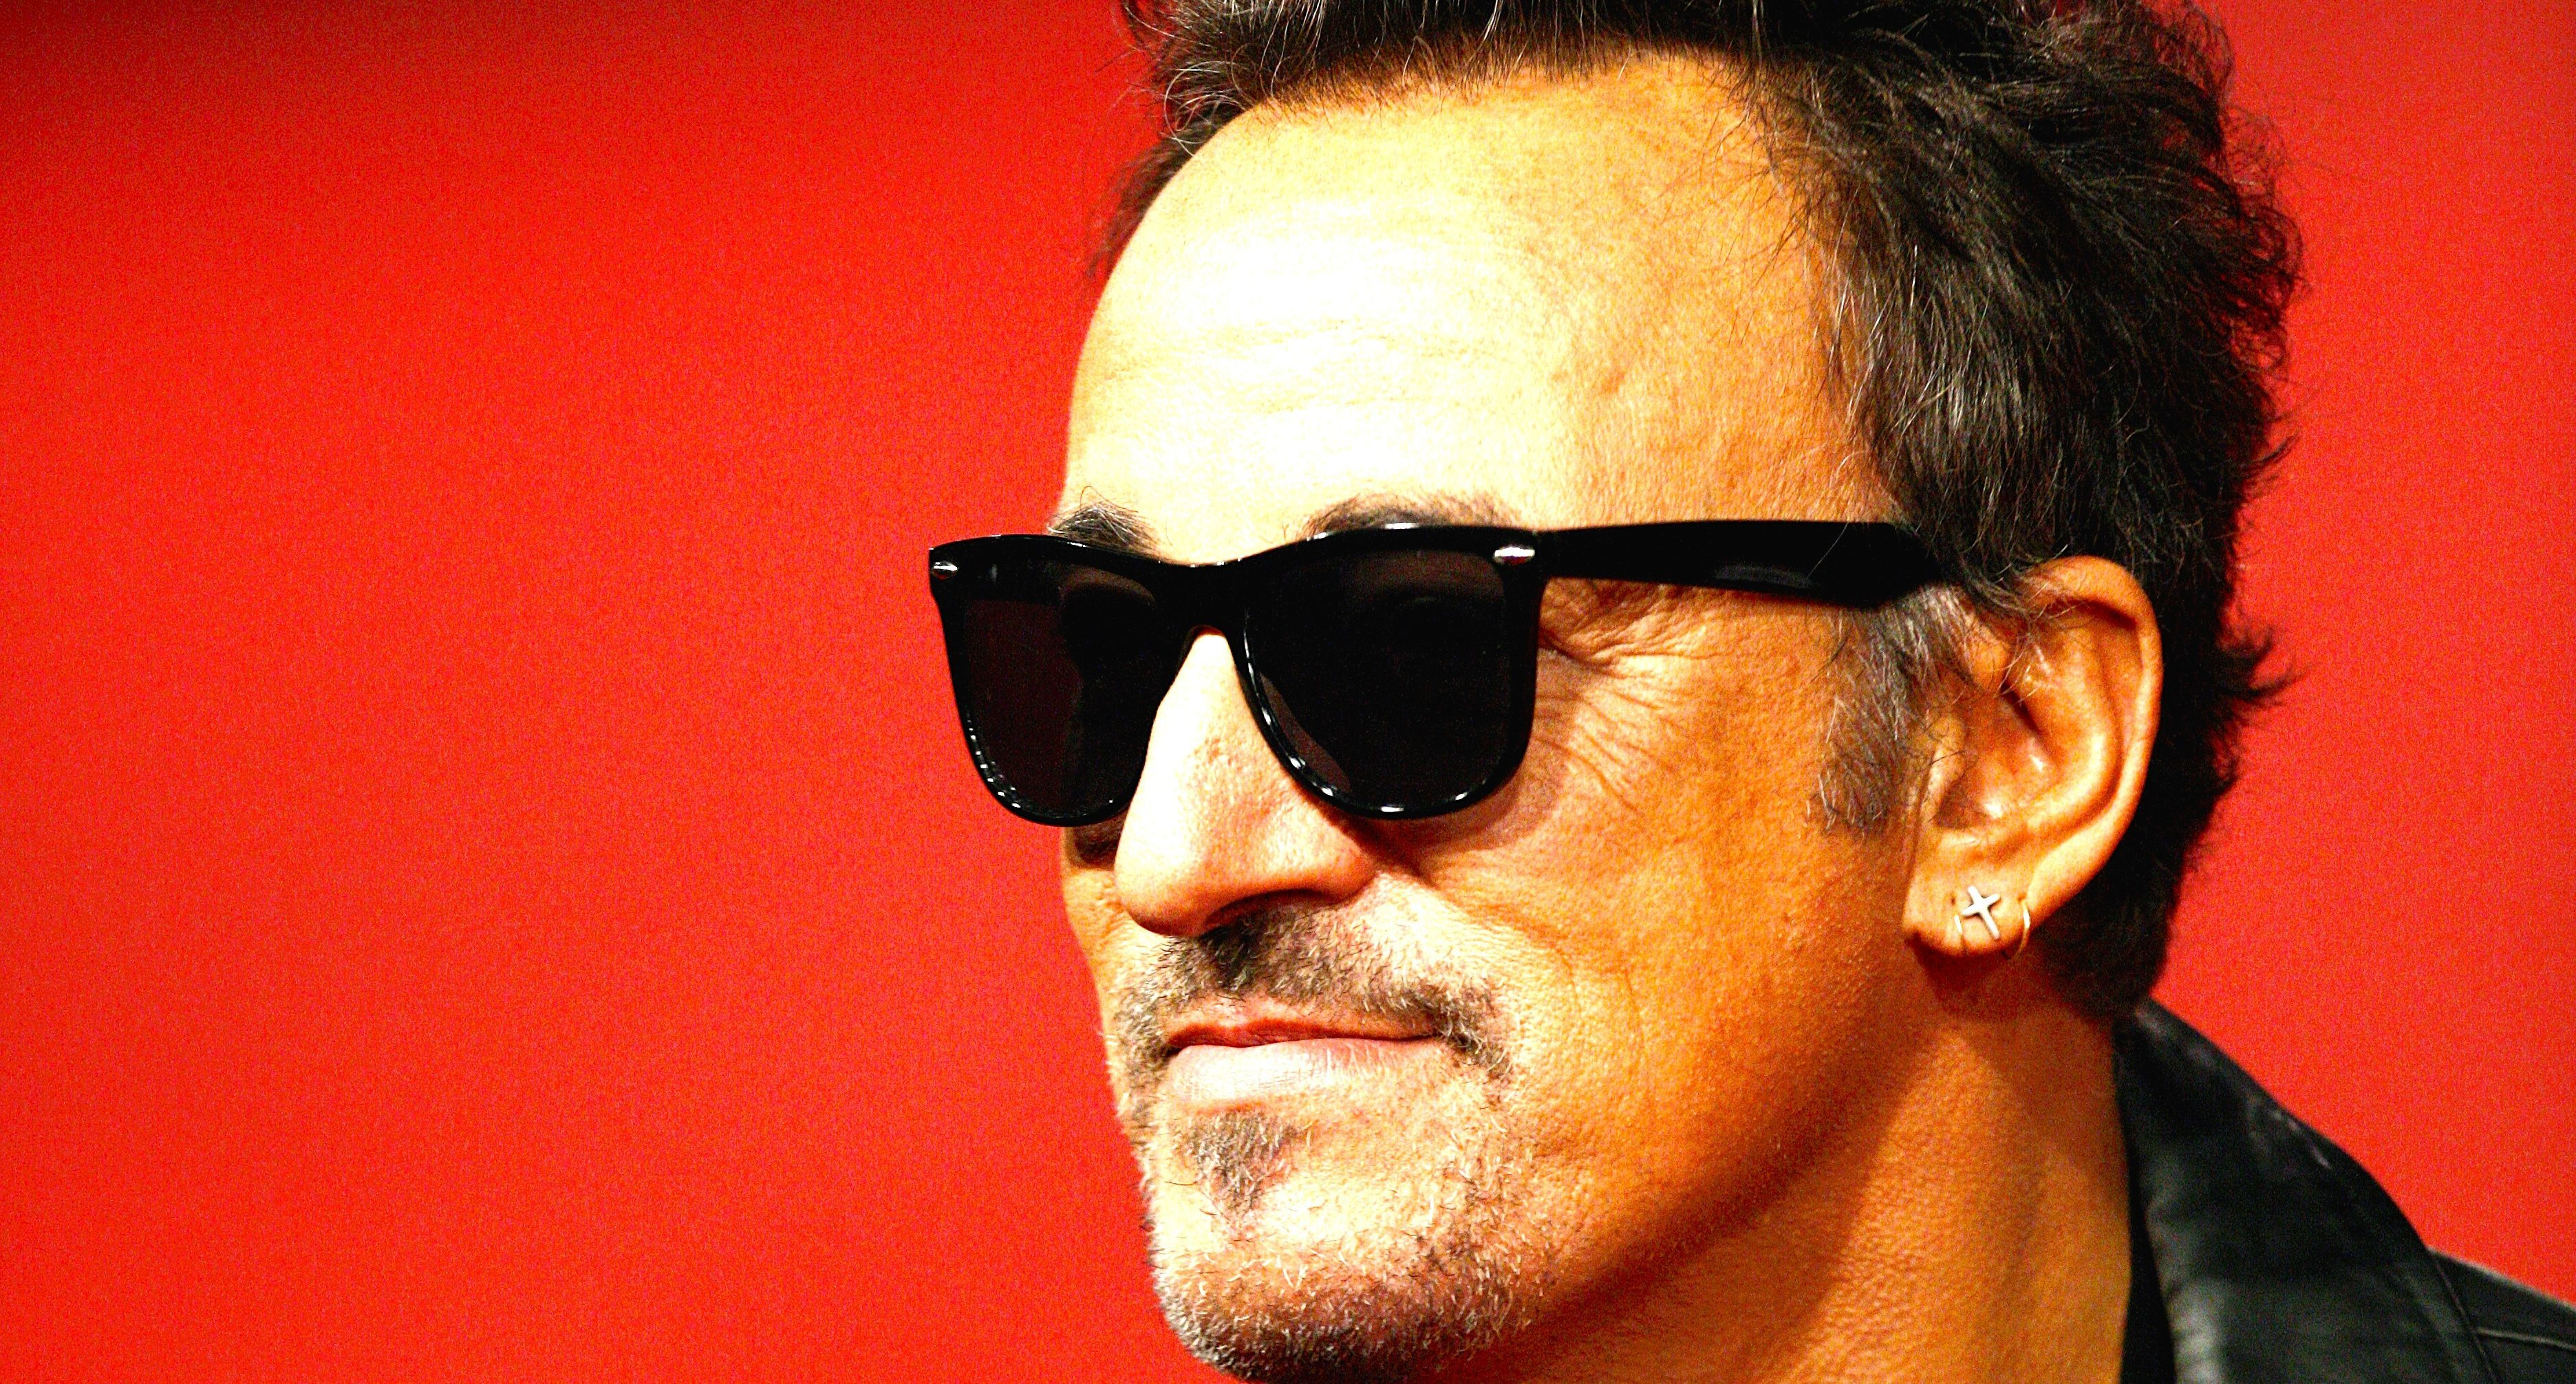 Bruce Springsteen fined $540 for drinking tequila in US national park